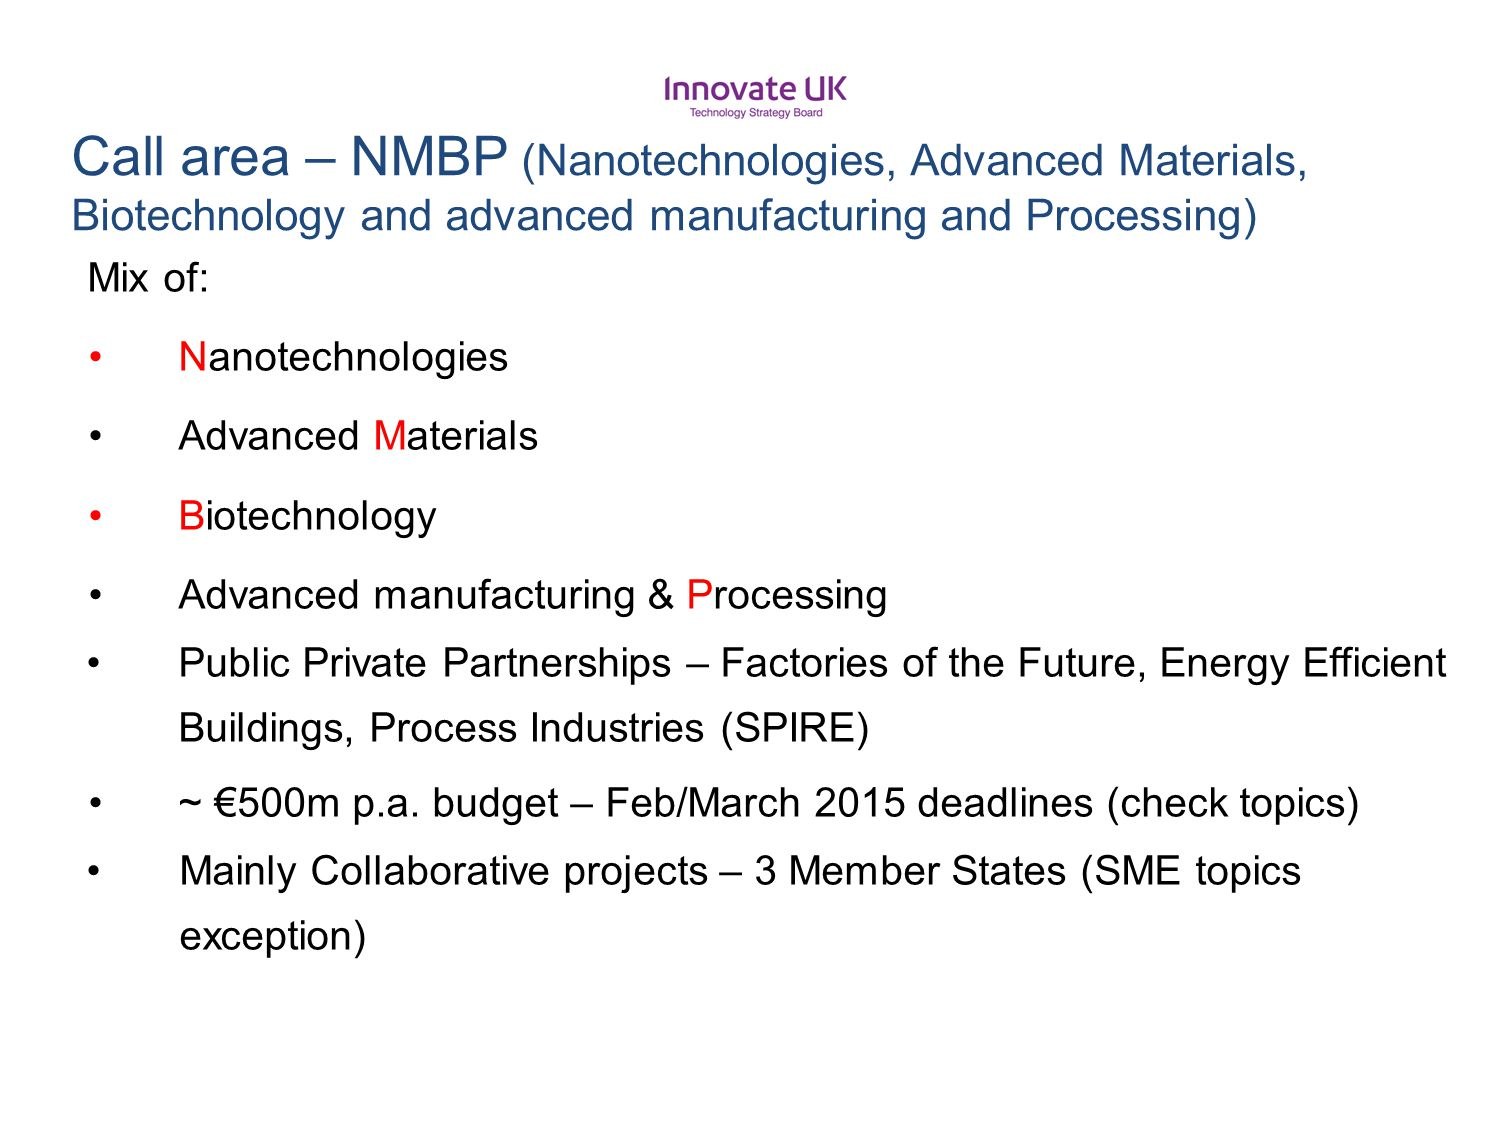 Call area – NMBP (Nanotechnologies, Advanced Materials, Biotechnology and advanced manufacturing and Processing)